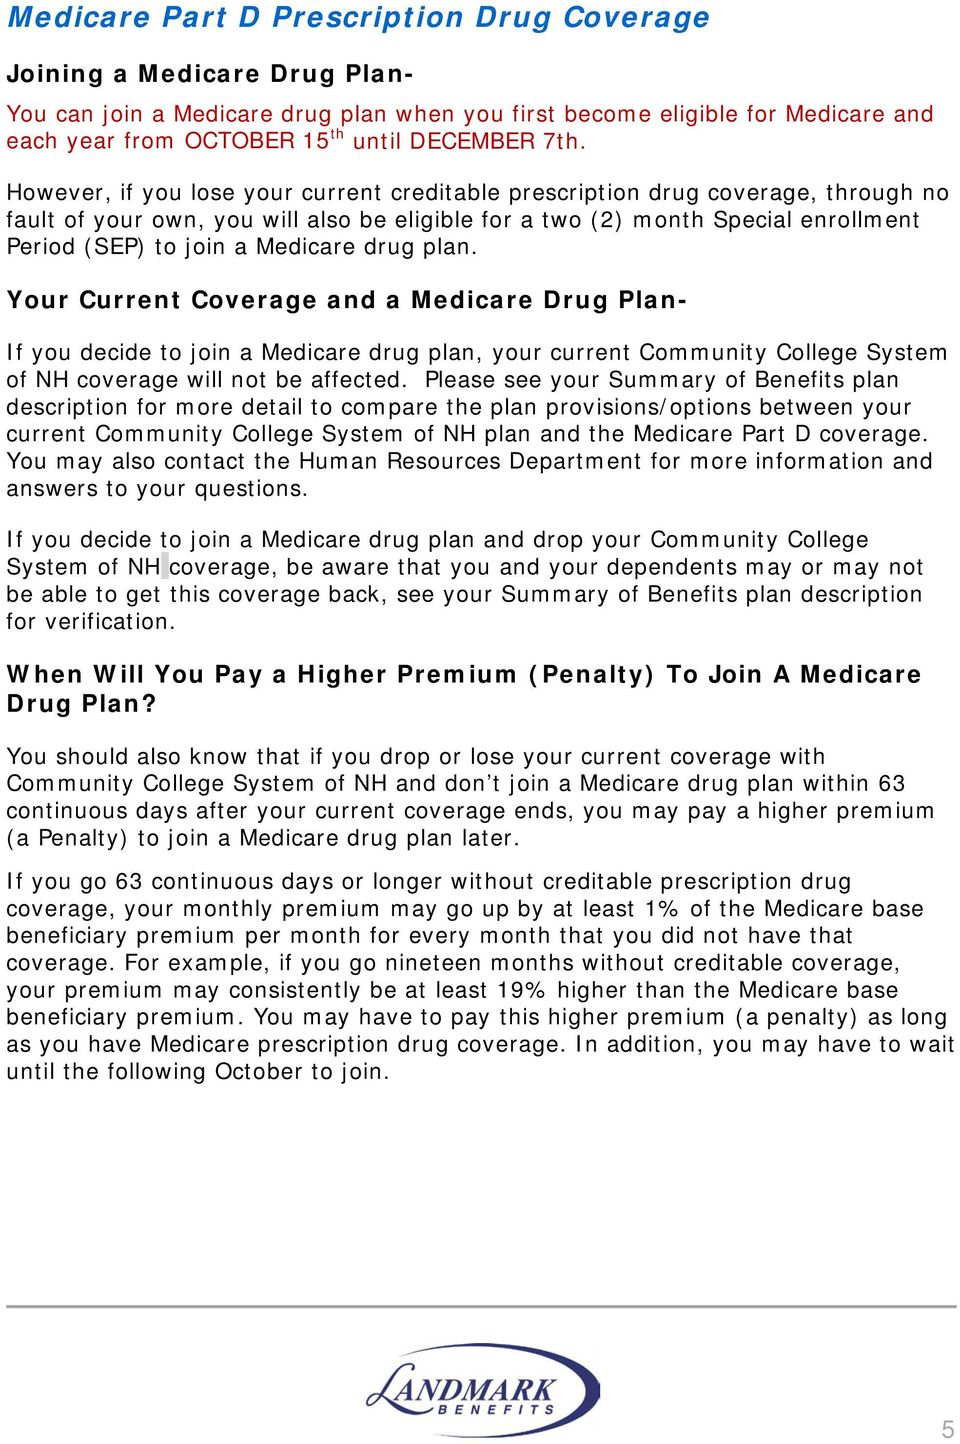 Medicare drug plan. Your Current Coverage and a Medicare Drug Plan- If you decide to join a Medicare drug plan, your current Community College System of NH coverage will not be affected.